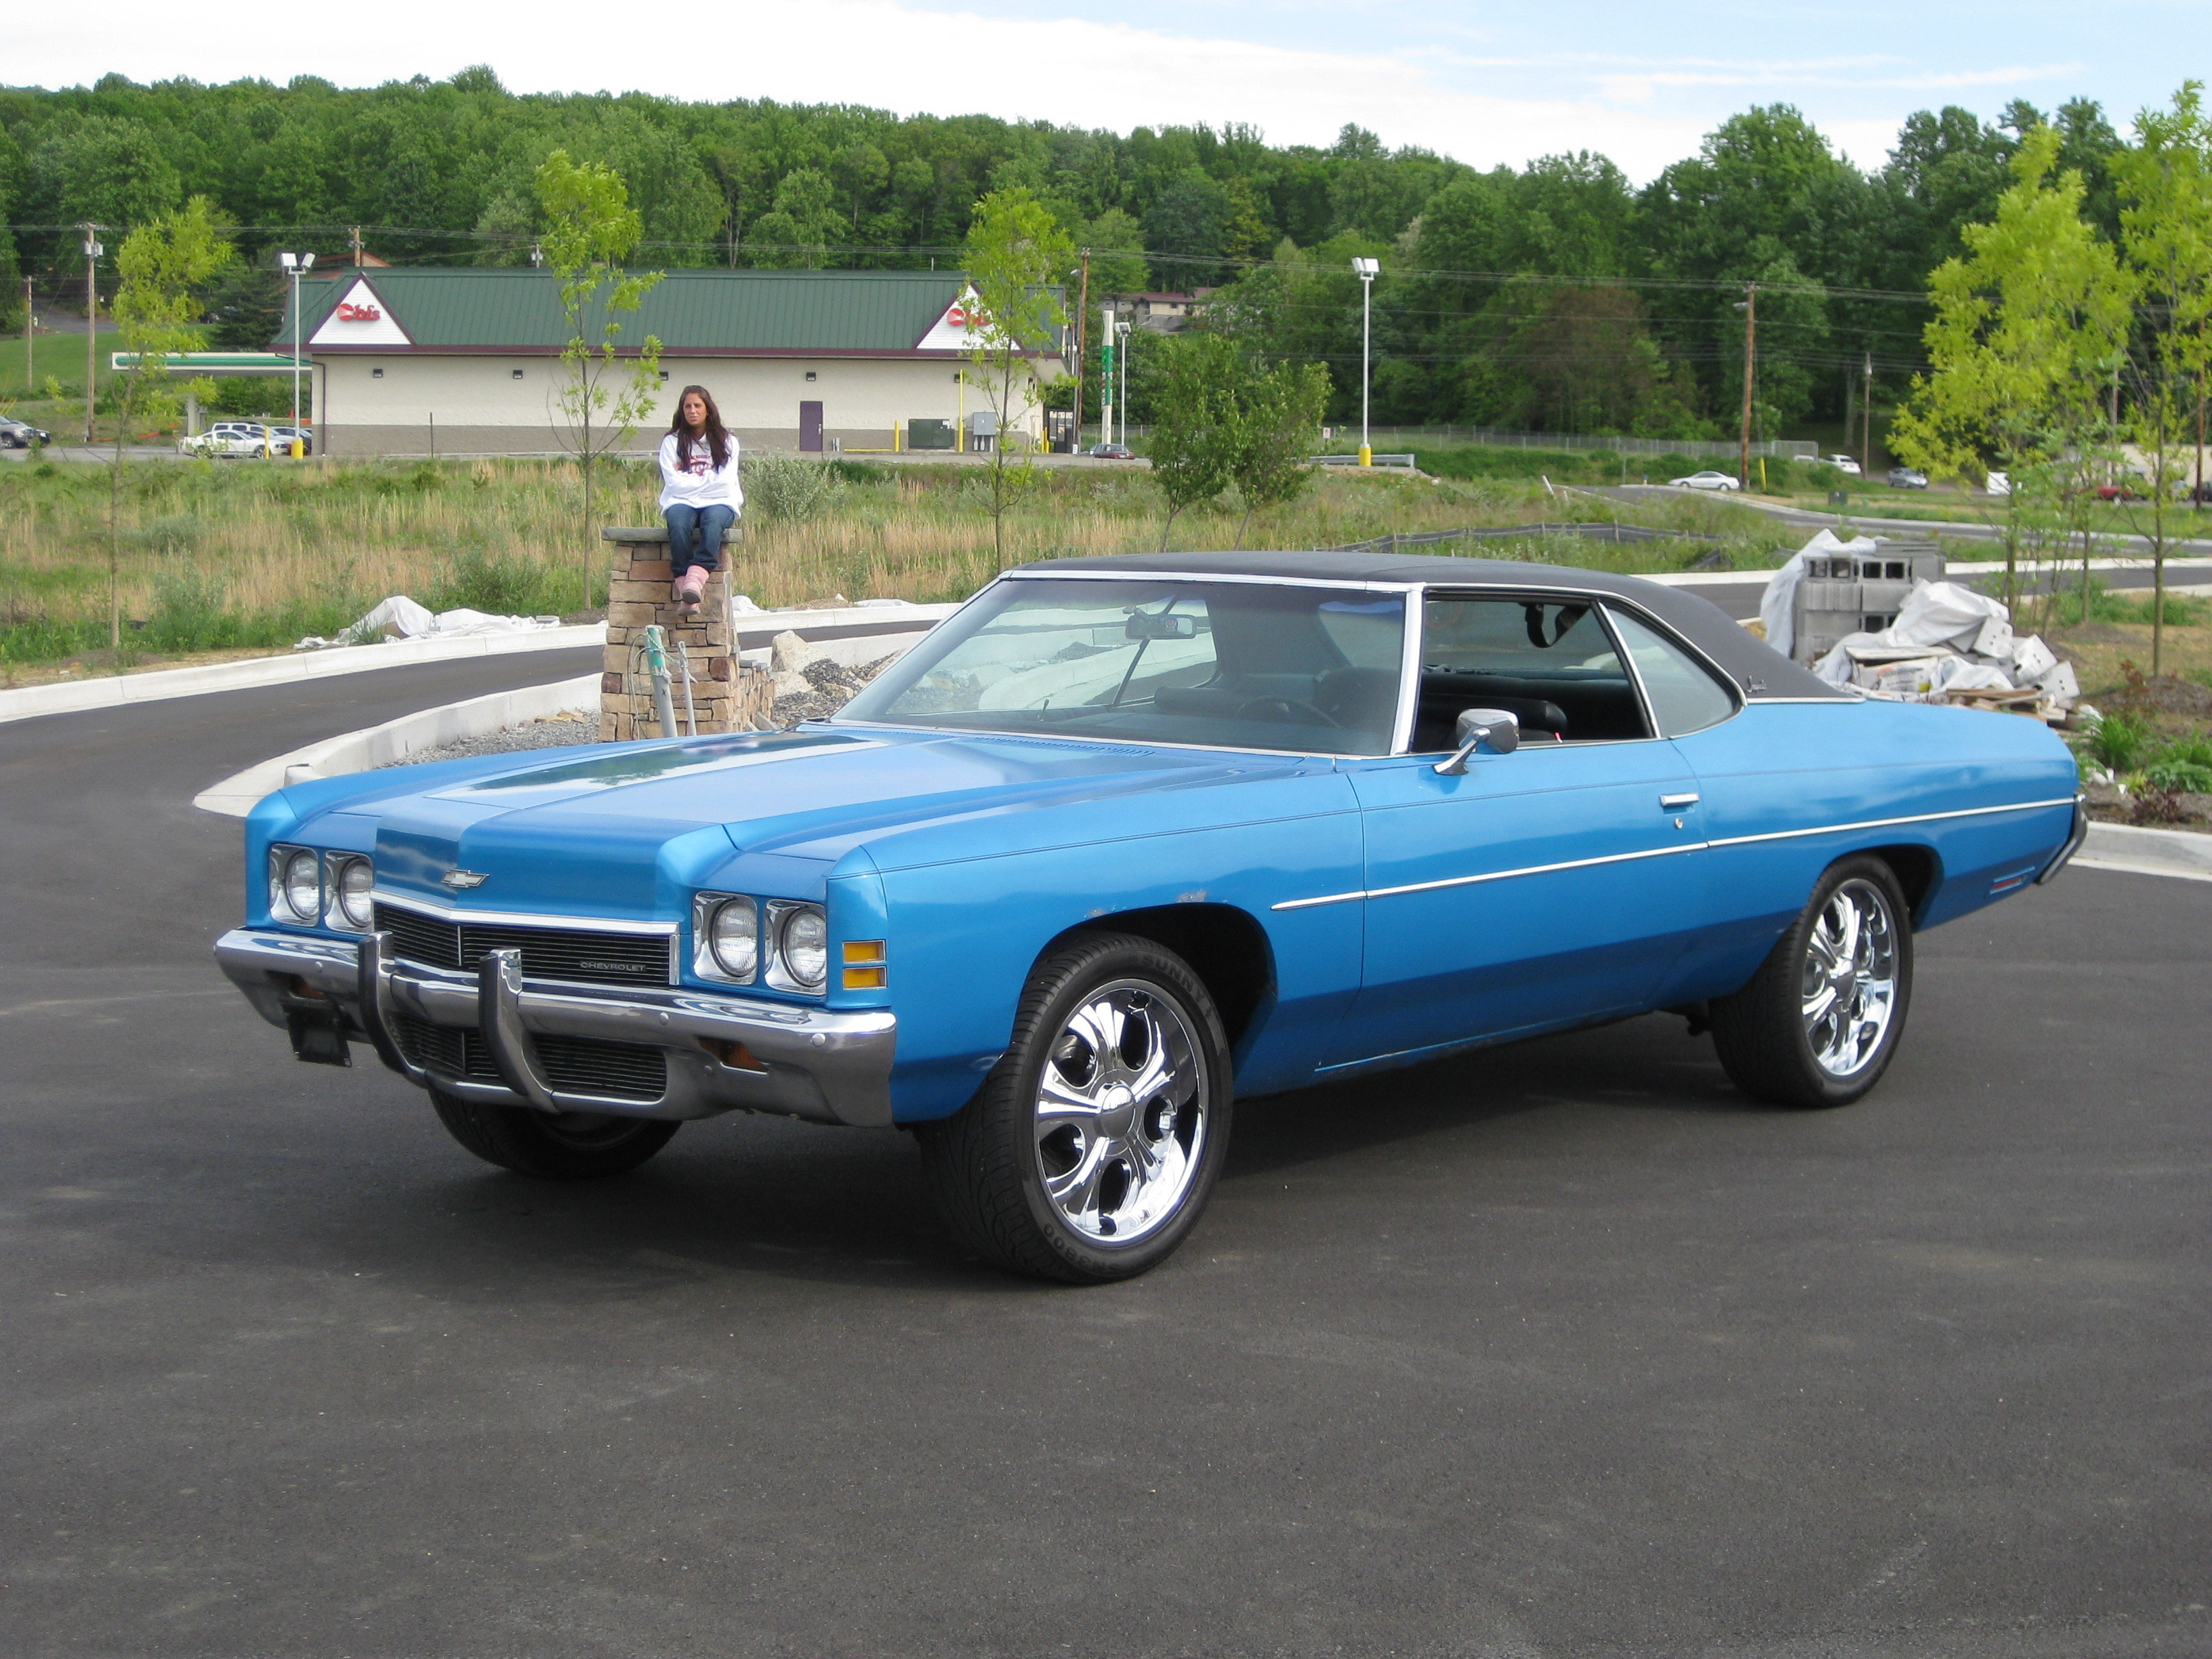 DioCustoms 1972 Chevrolet Impala Specs, Photos, Modification Info at